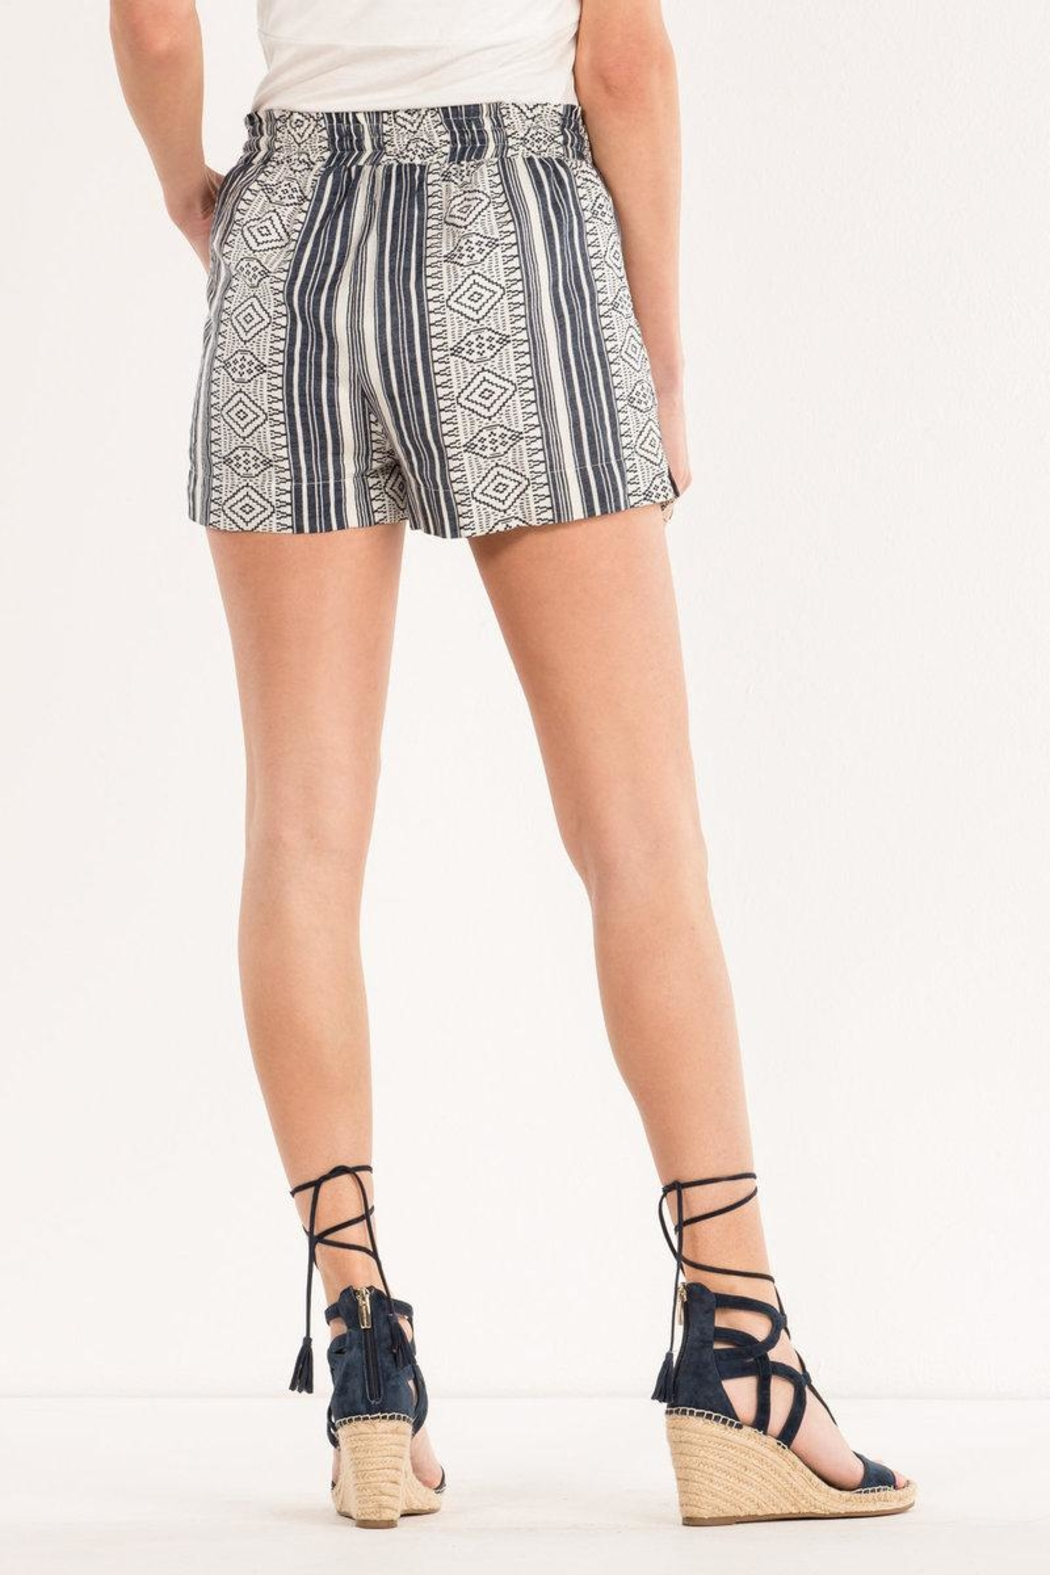 Miss Me Aztec Printed Shorts - Side Cropped Image